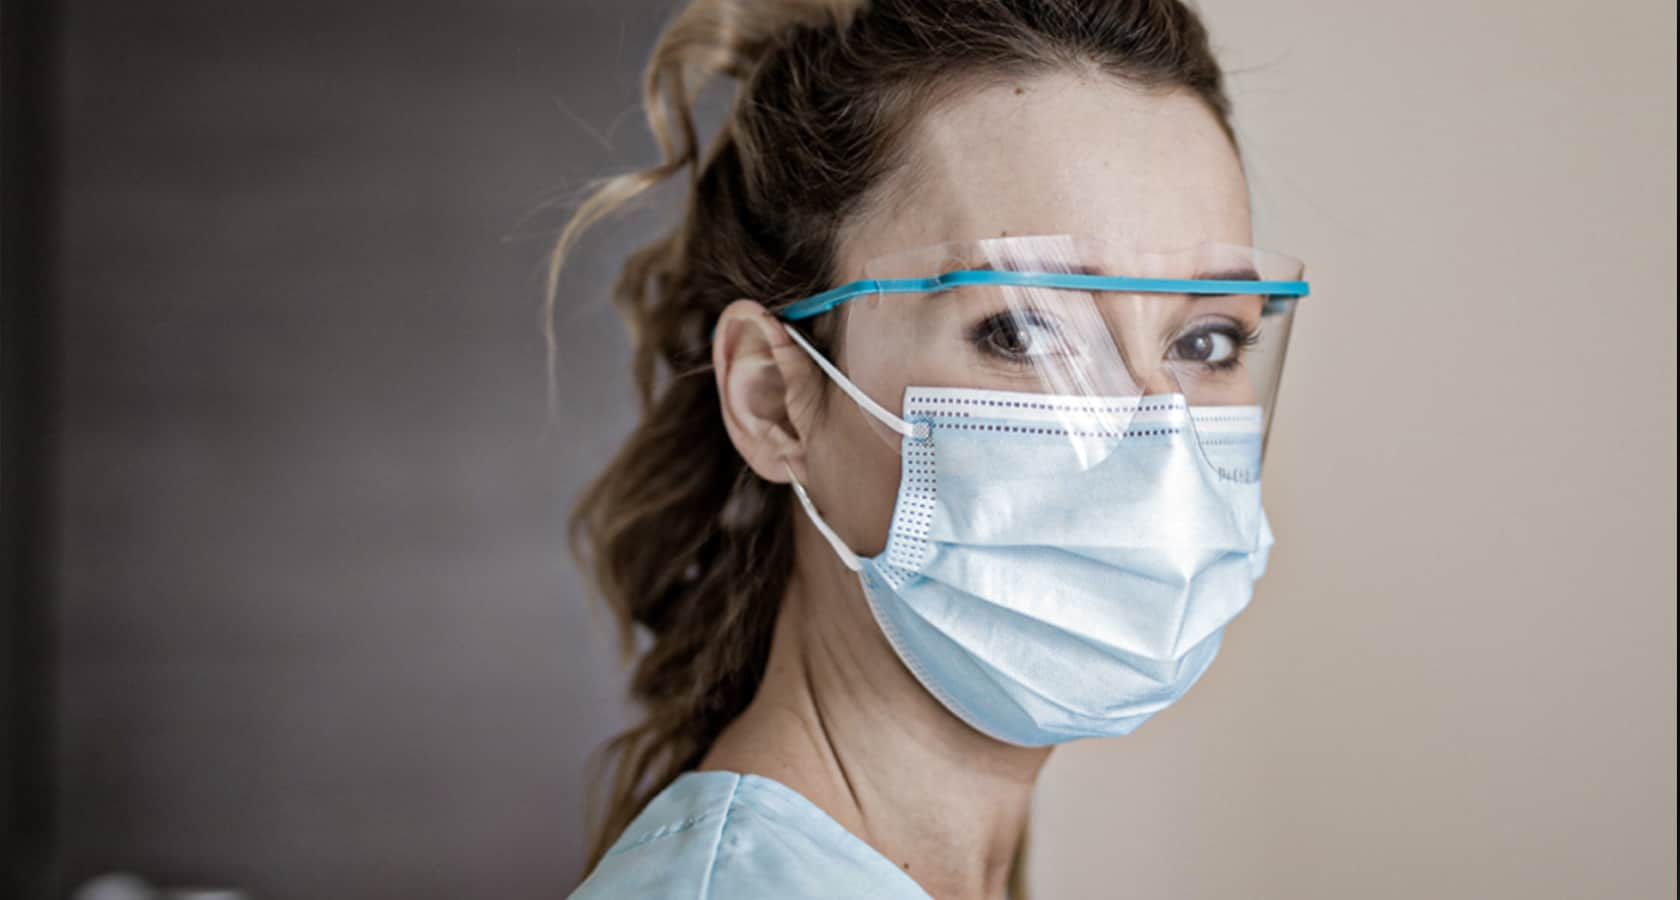 A woman wearing goggles and a facemask